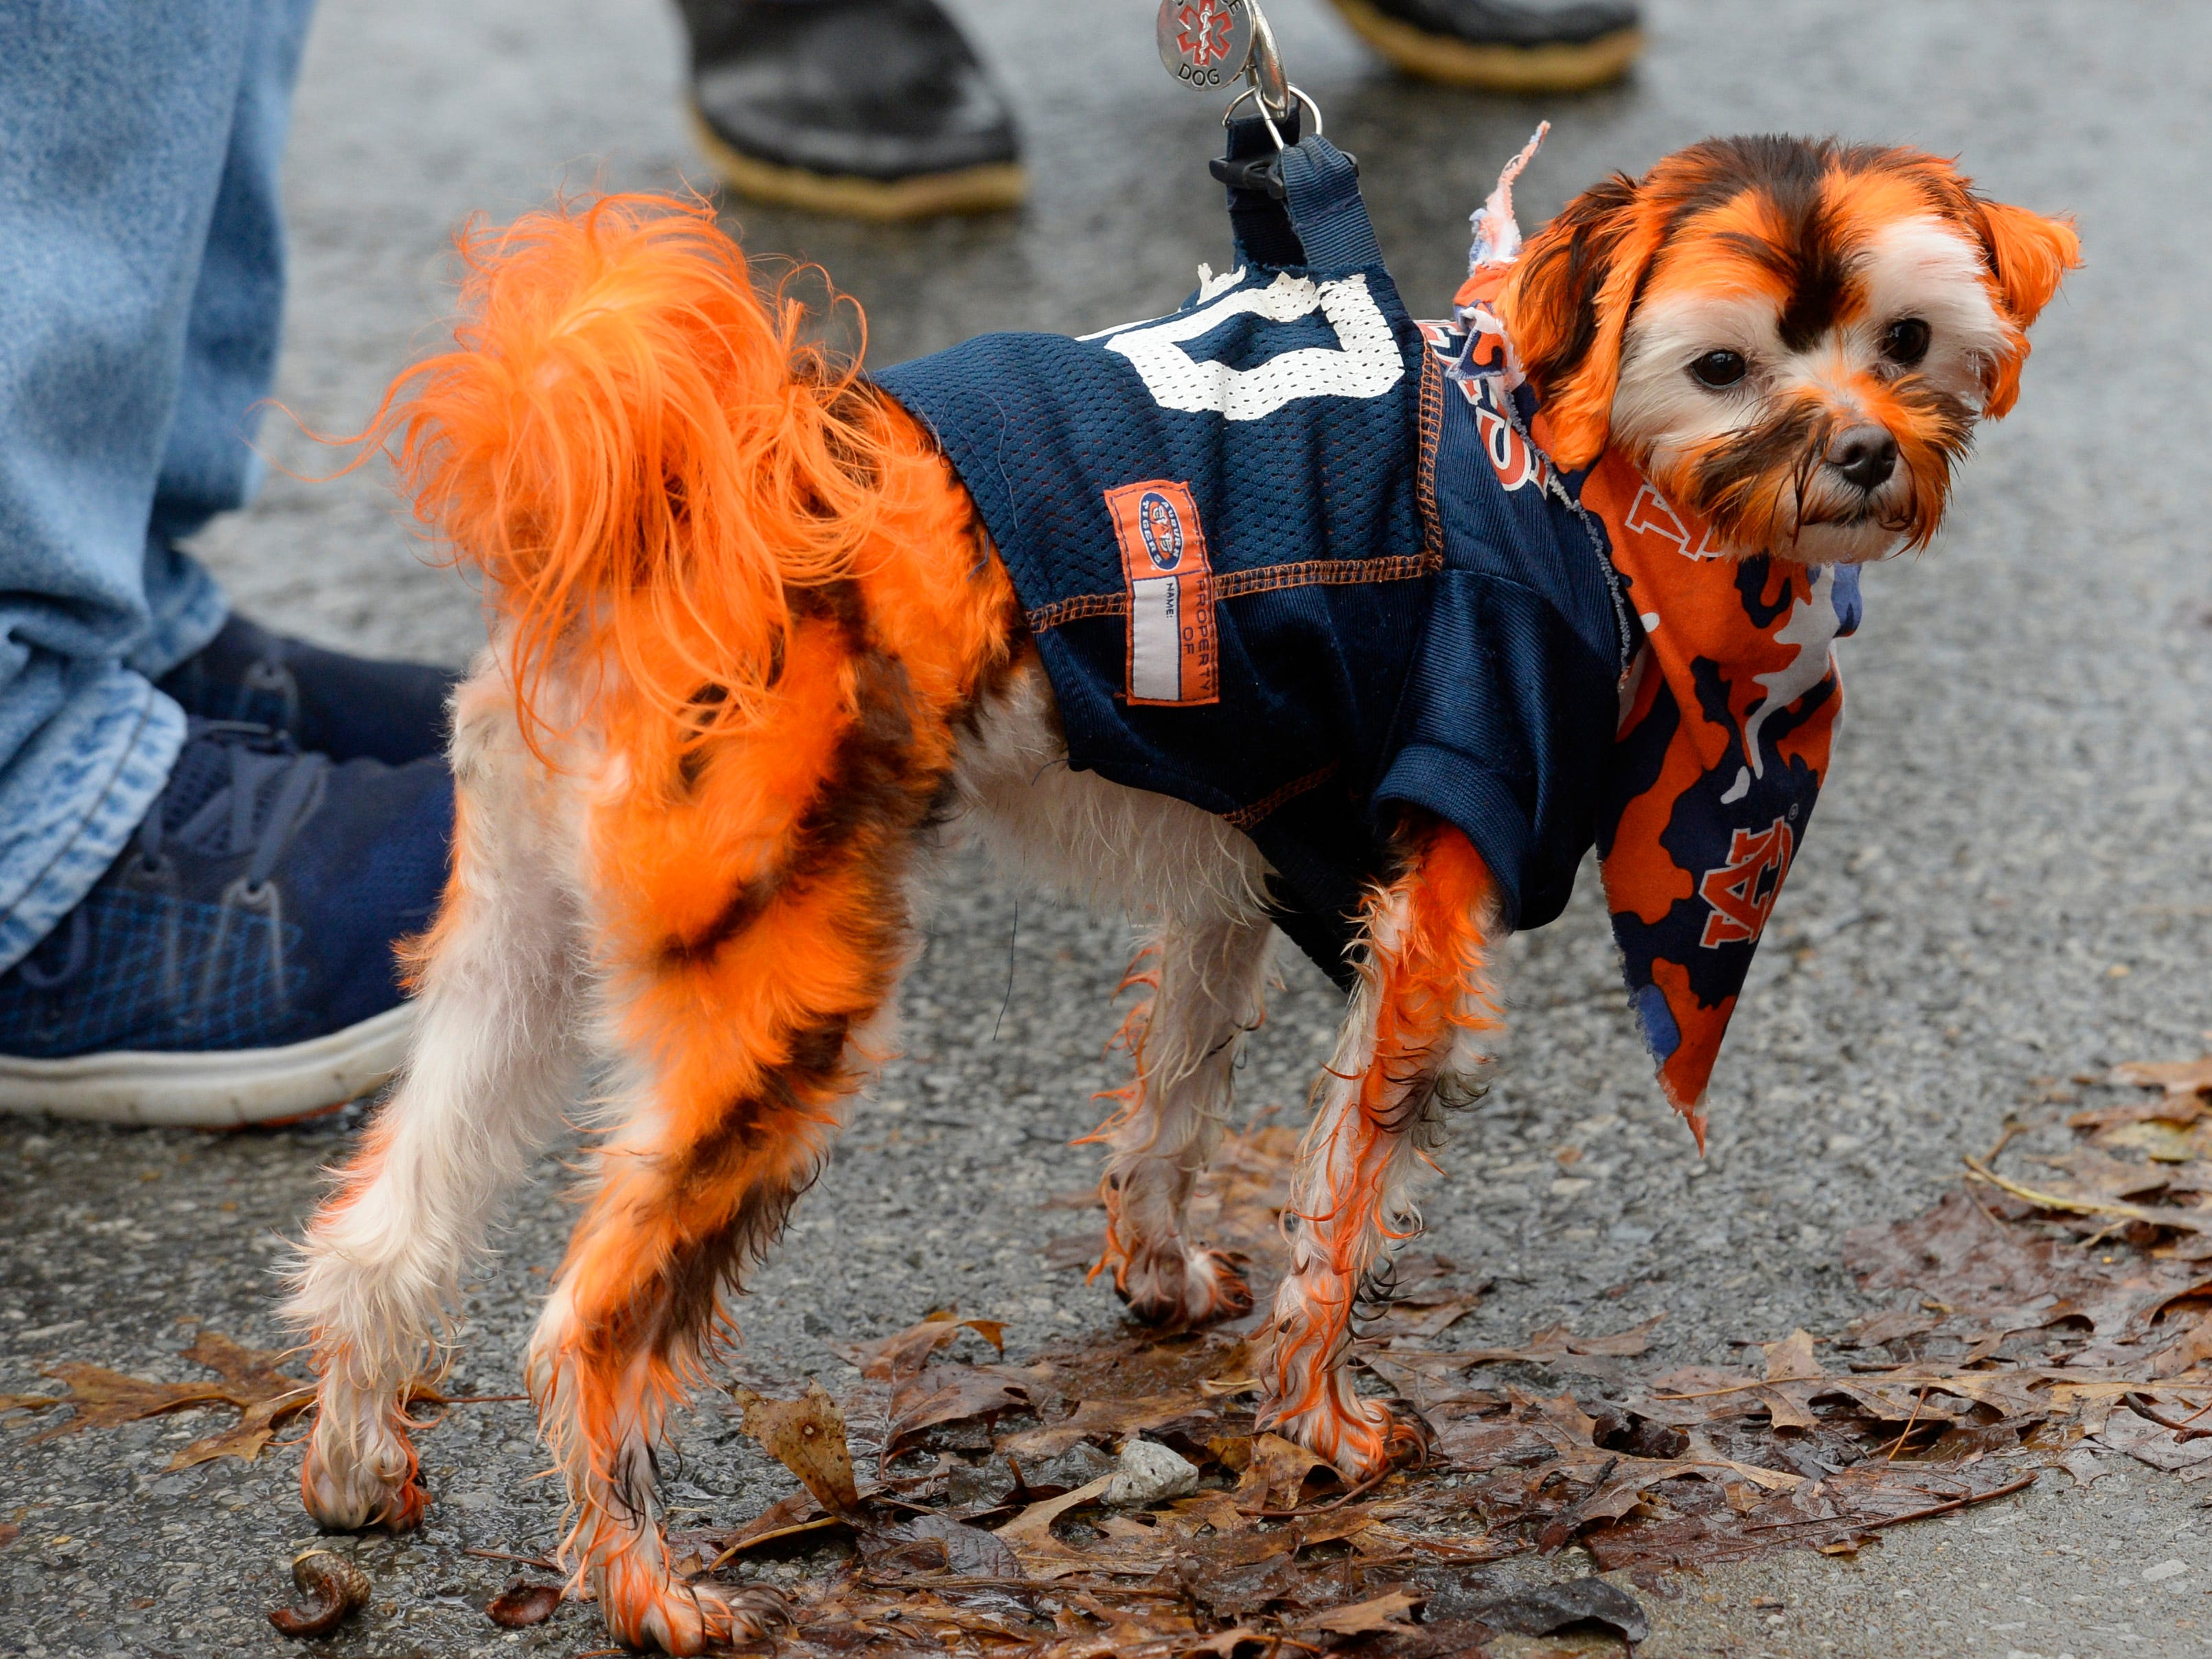 Jake clearly is an an Auburn fan decked out in the team's colors before the start of the Music City Bowl NCAA college football game Friday, Dec. 28, 2018, at Nissan Stadium in Nashville, Tenn.